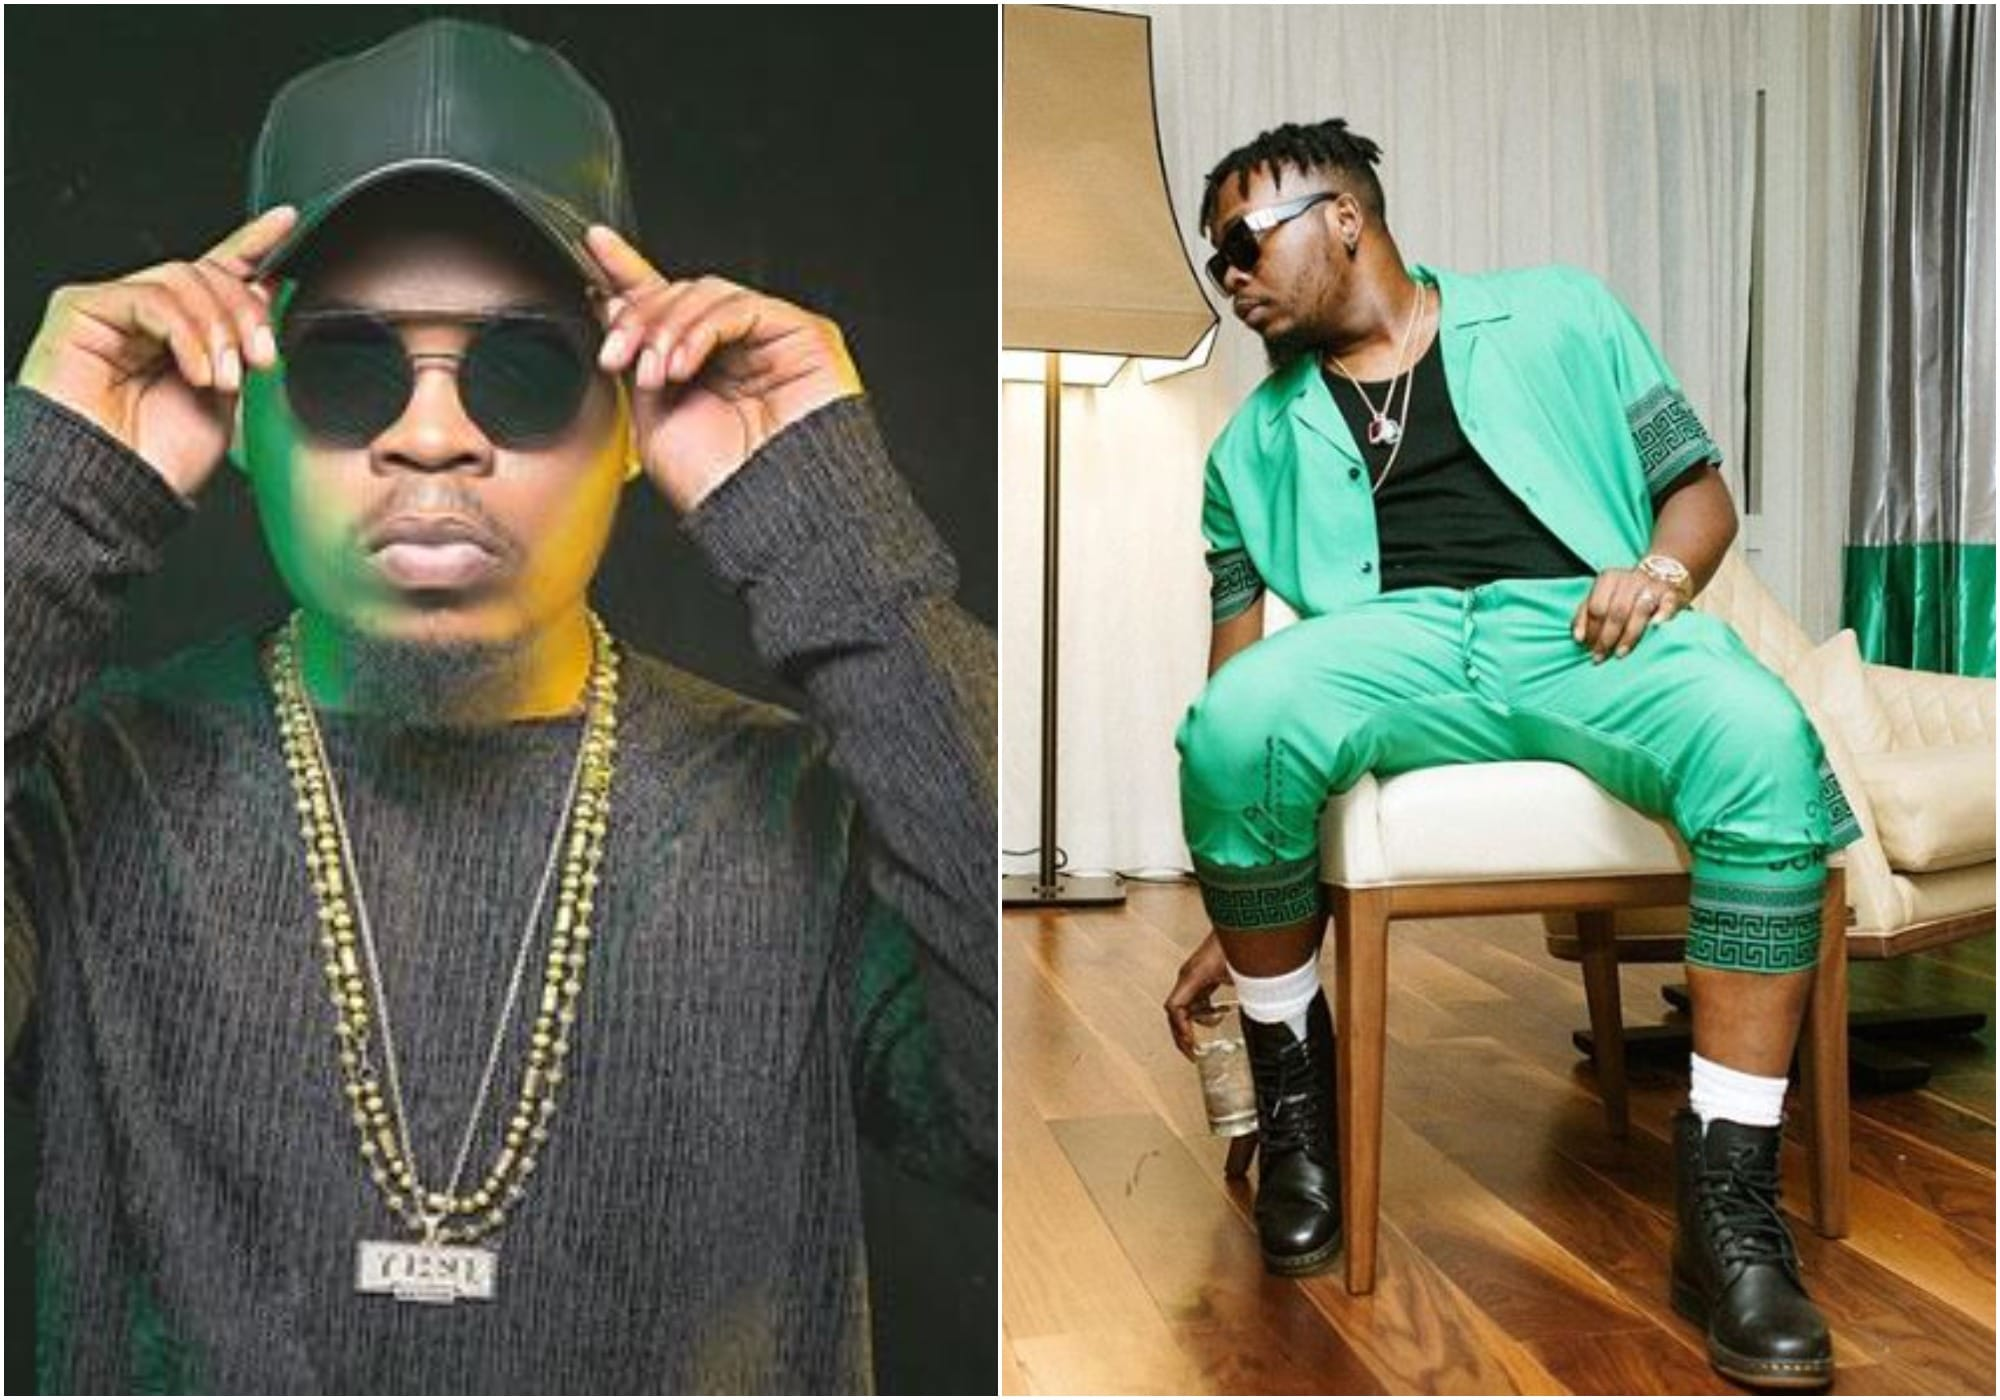 'Show of humility' - Olamide Bado pays respect to K1 De Ultimate